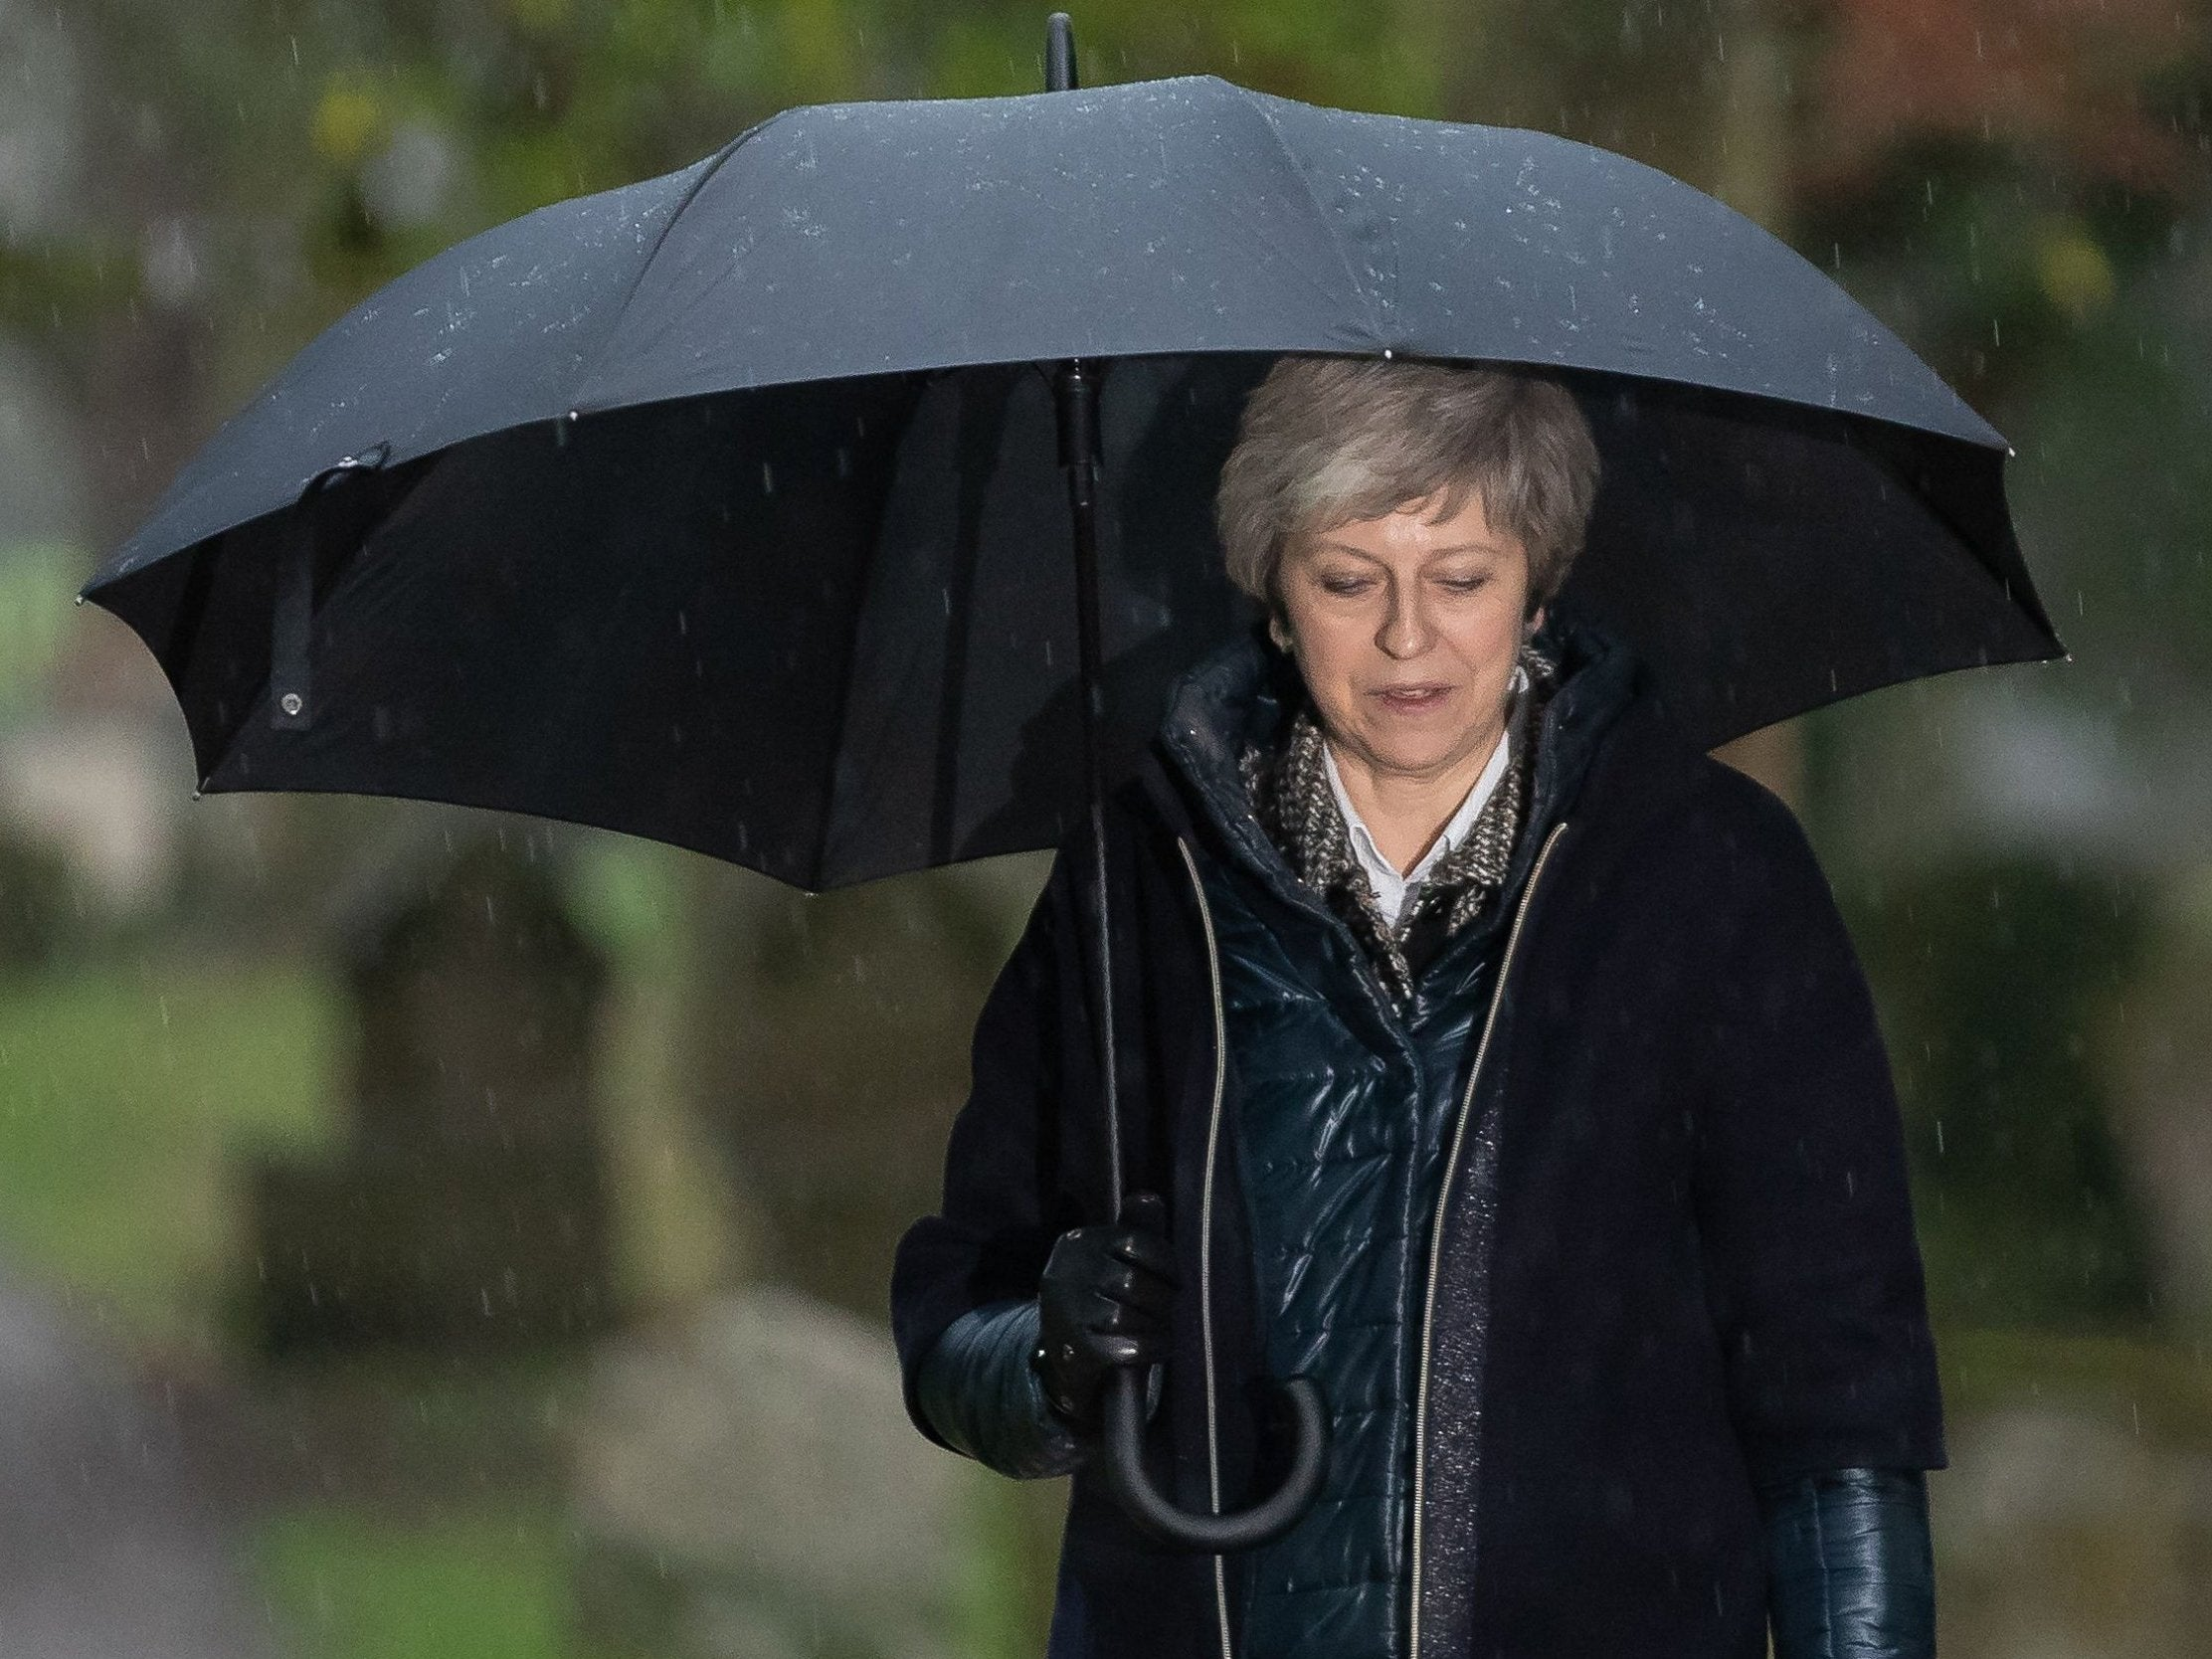 Brexit: Conservative leadership rivals circle Theresa May ahead of expected defeat in crunch Commons vote